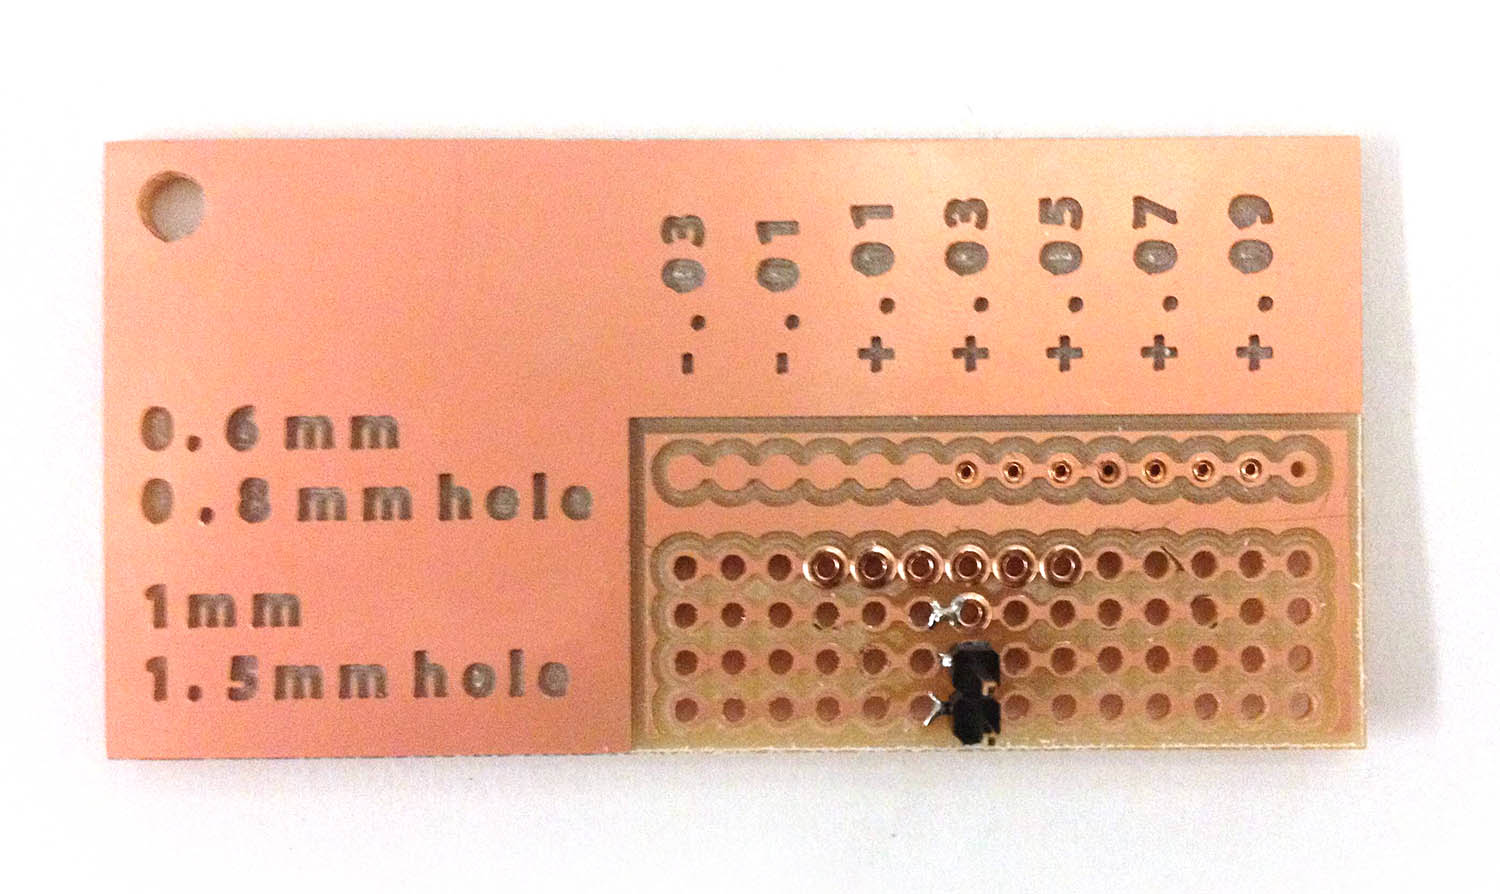 Pcb Rivets Circuit Board The Finished Boards For 06mm Best Hole Sizes Fell In Range Diameter 083 089mm 083mm To 086mm Gave A Snugger Pressfit Up Still